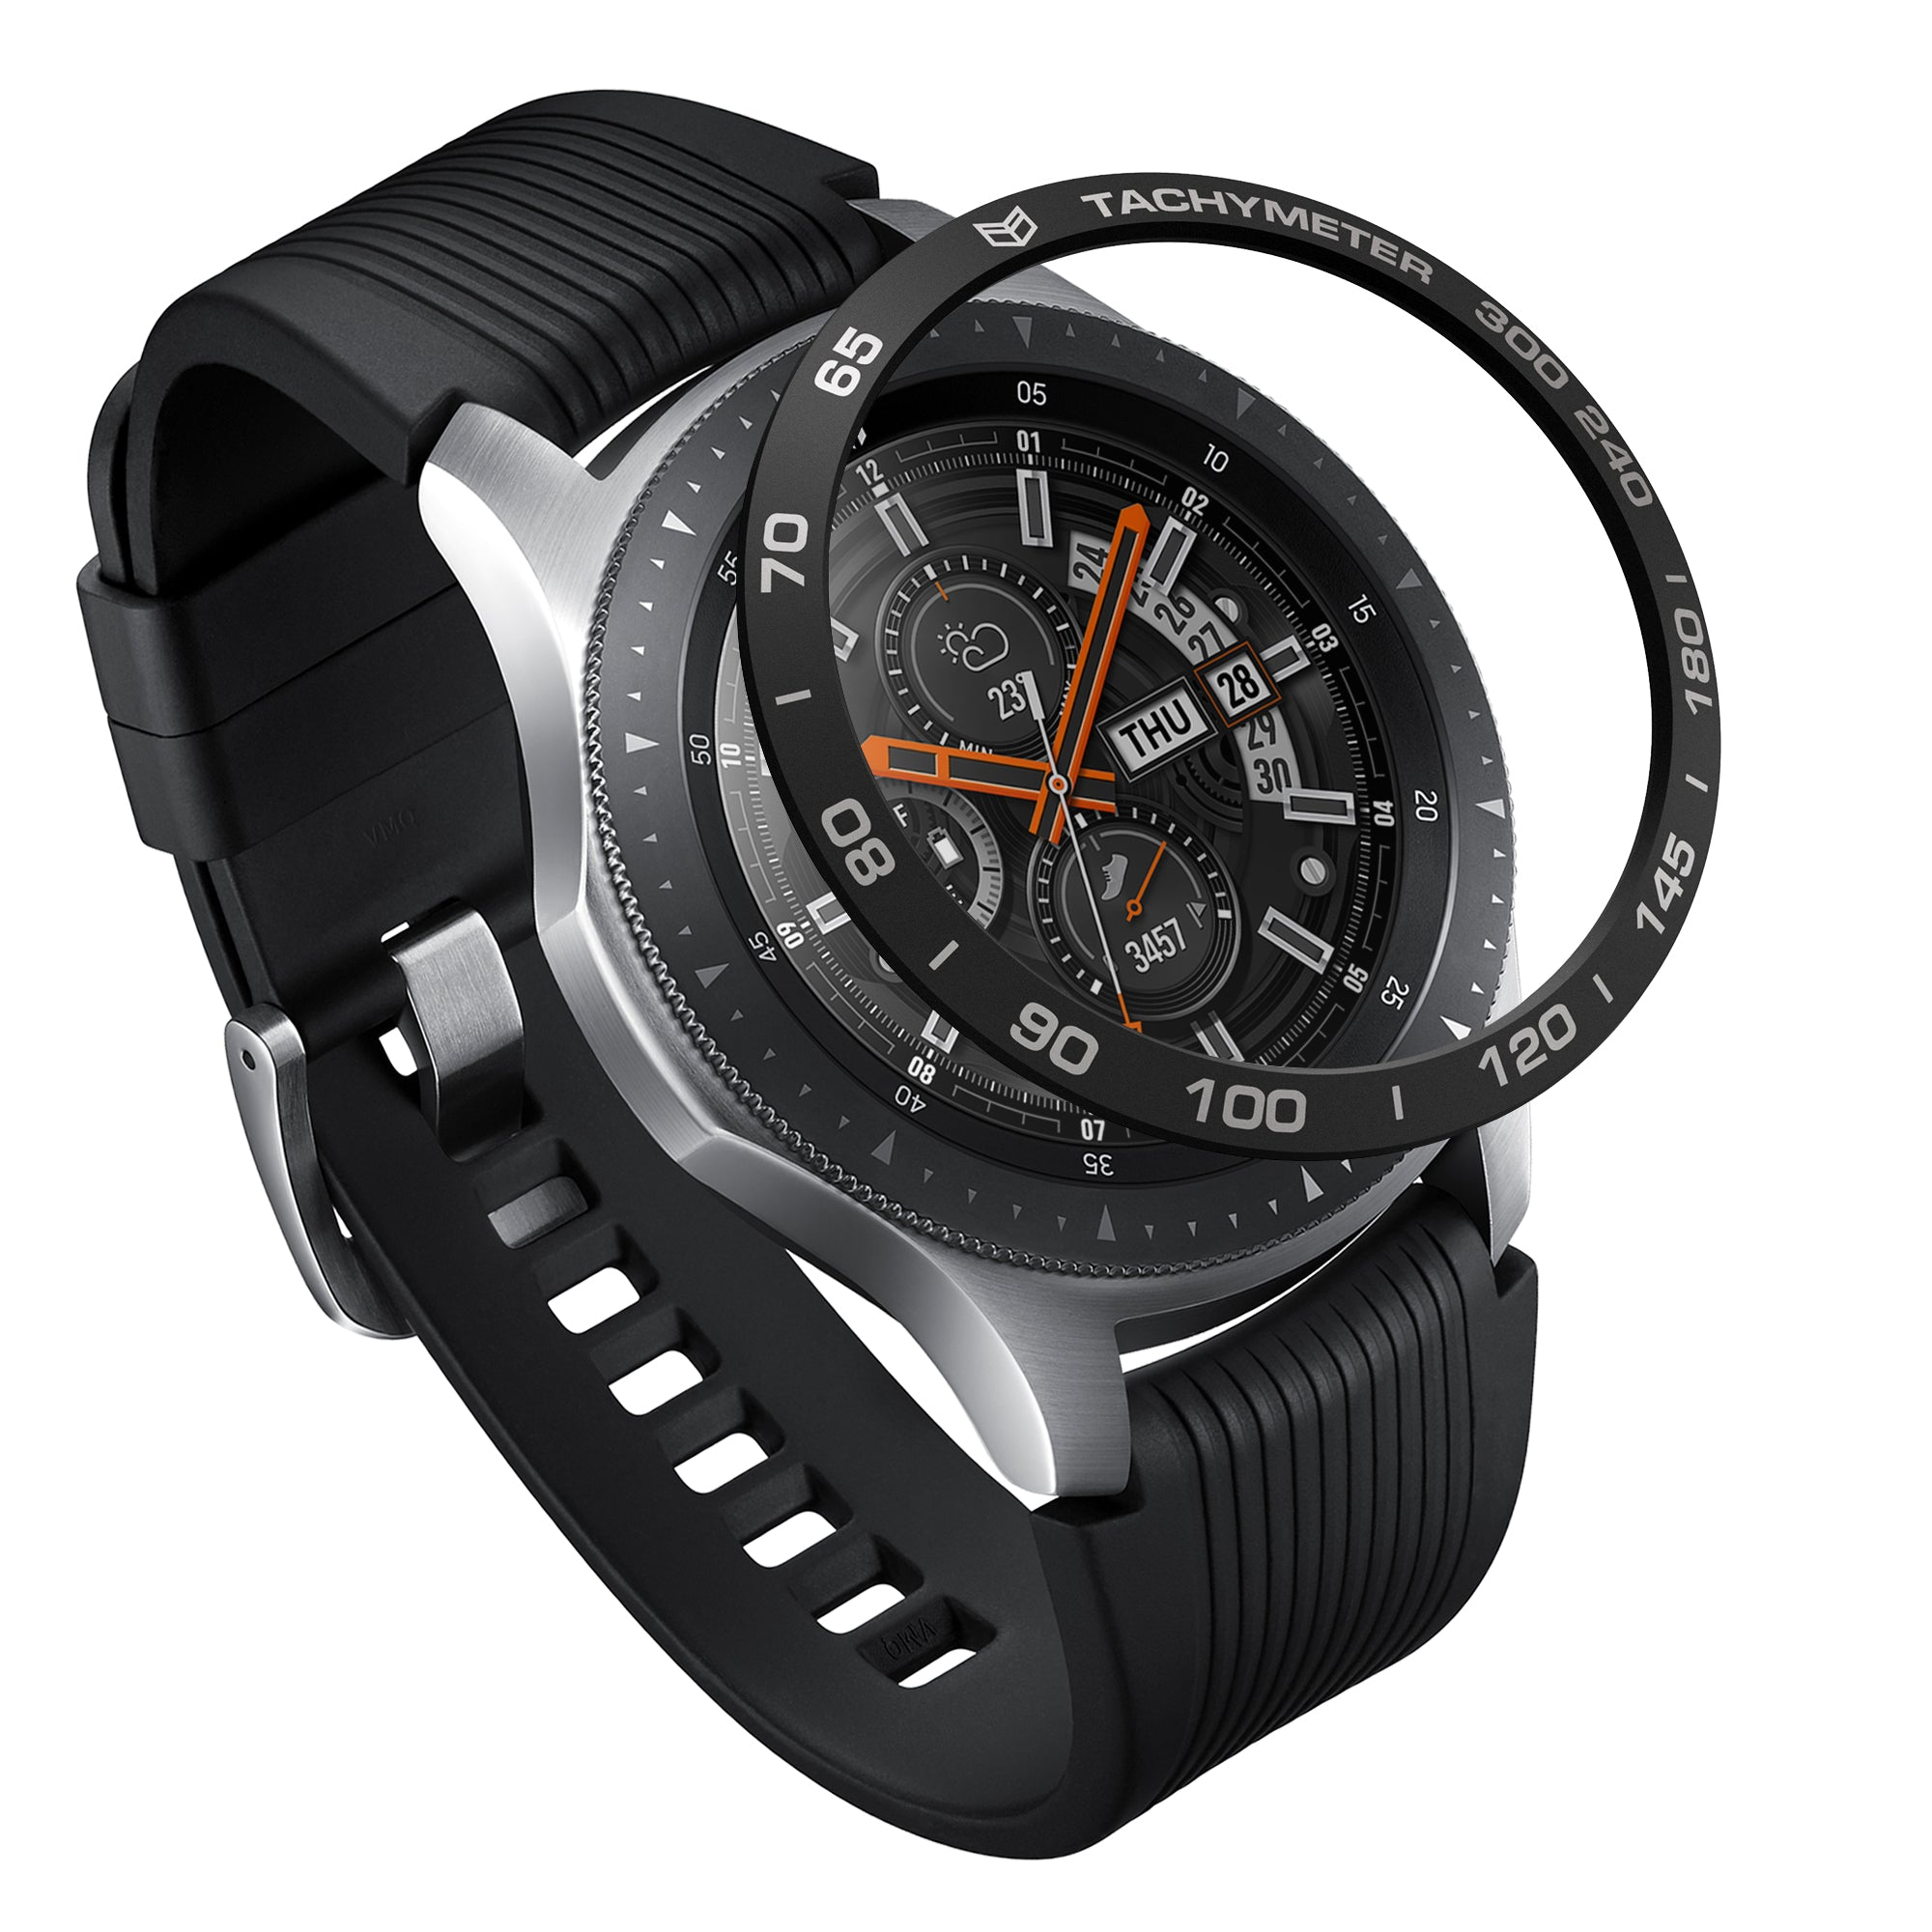 ringke bezel styling aluminium black for galaxy watch 46mm, gear s3 frontier and classic